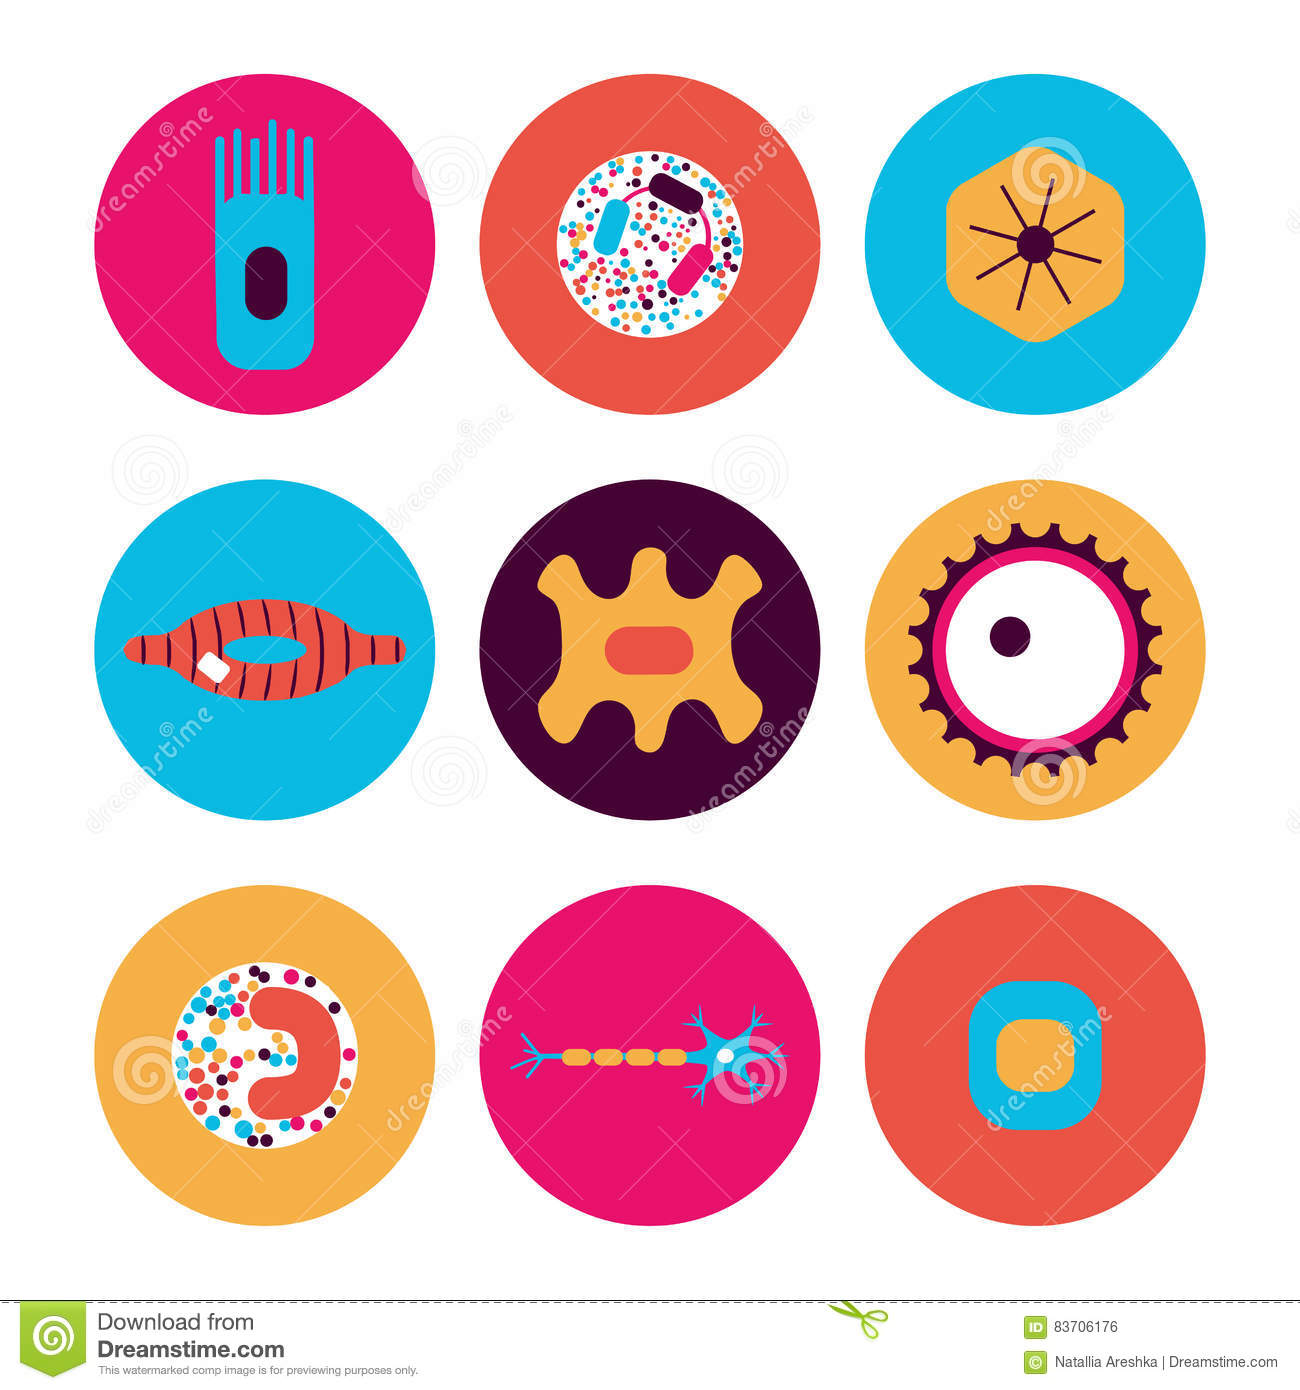 Different Human Cell Types Stock Vector Illustration Of Medical